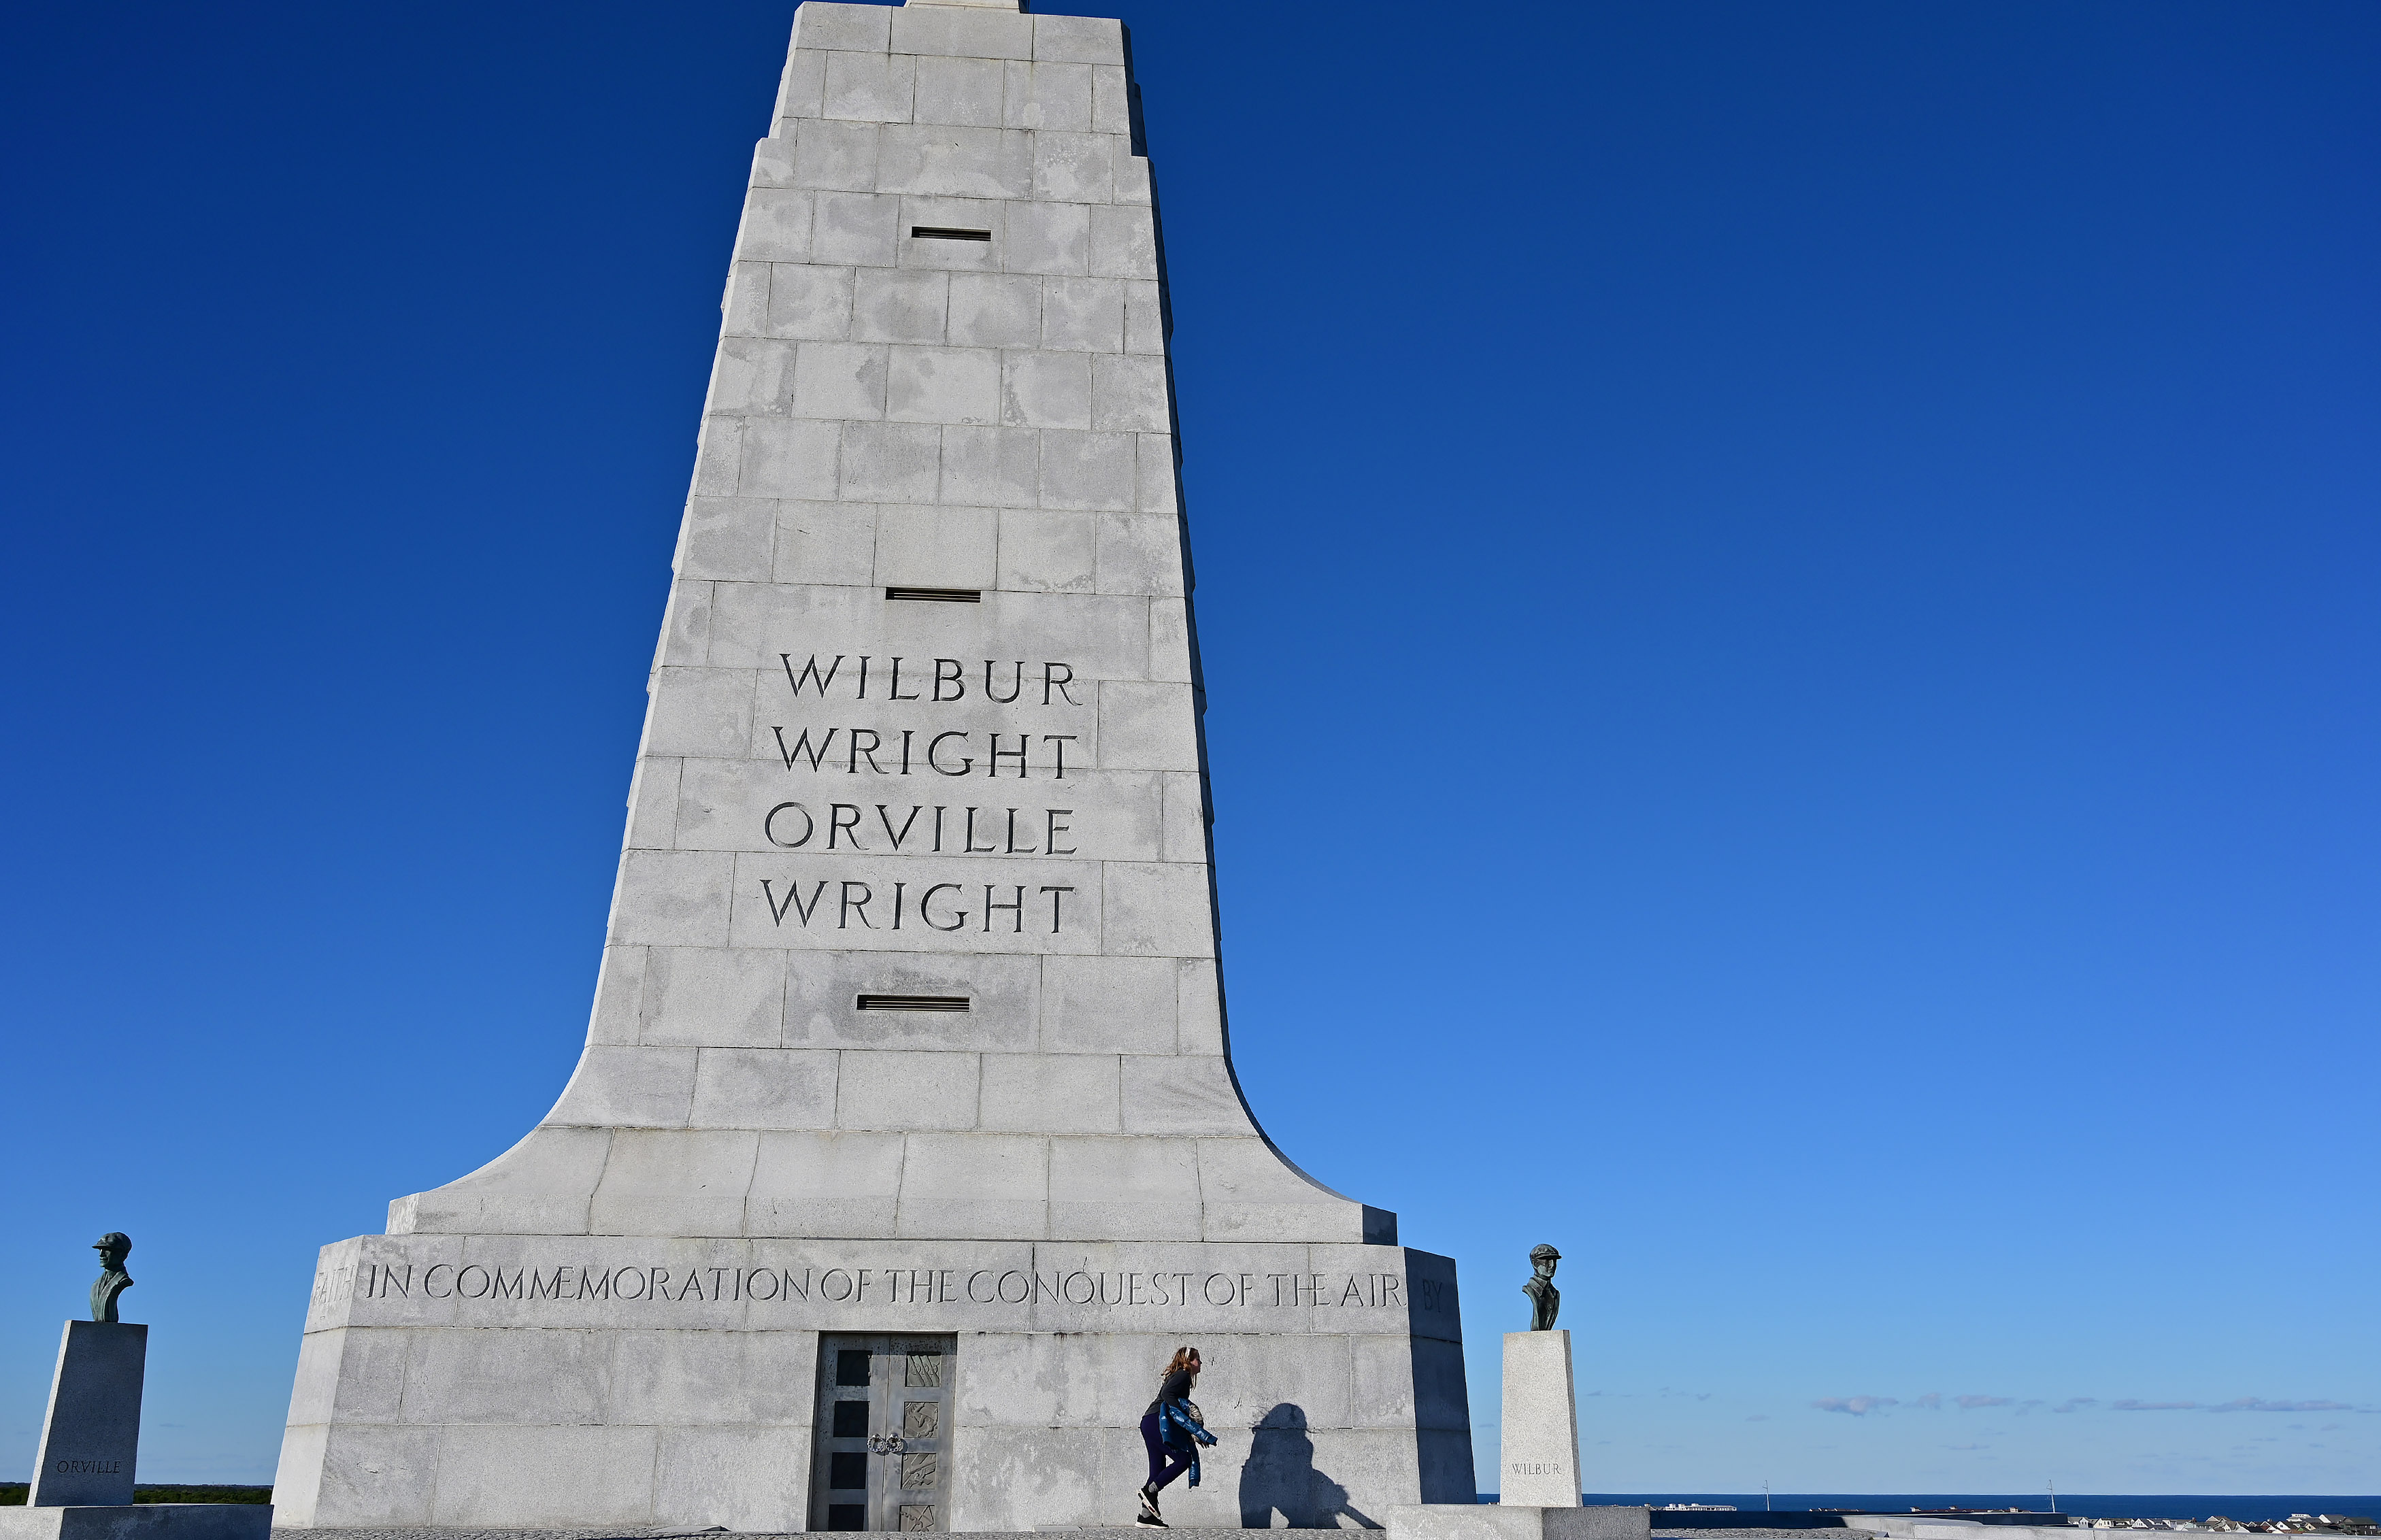 A youth explores the 60-foot monument at Kill Devil Hills at the Wright Brothers National Memorial in Kitty Hawk, North Carolina. A new visitors center, interactive exhibits, and a look at their bicycle building background await visitors to the Outer Banks memorial. Photo by David Tulis.